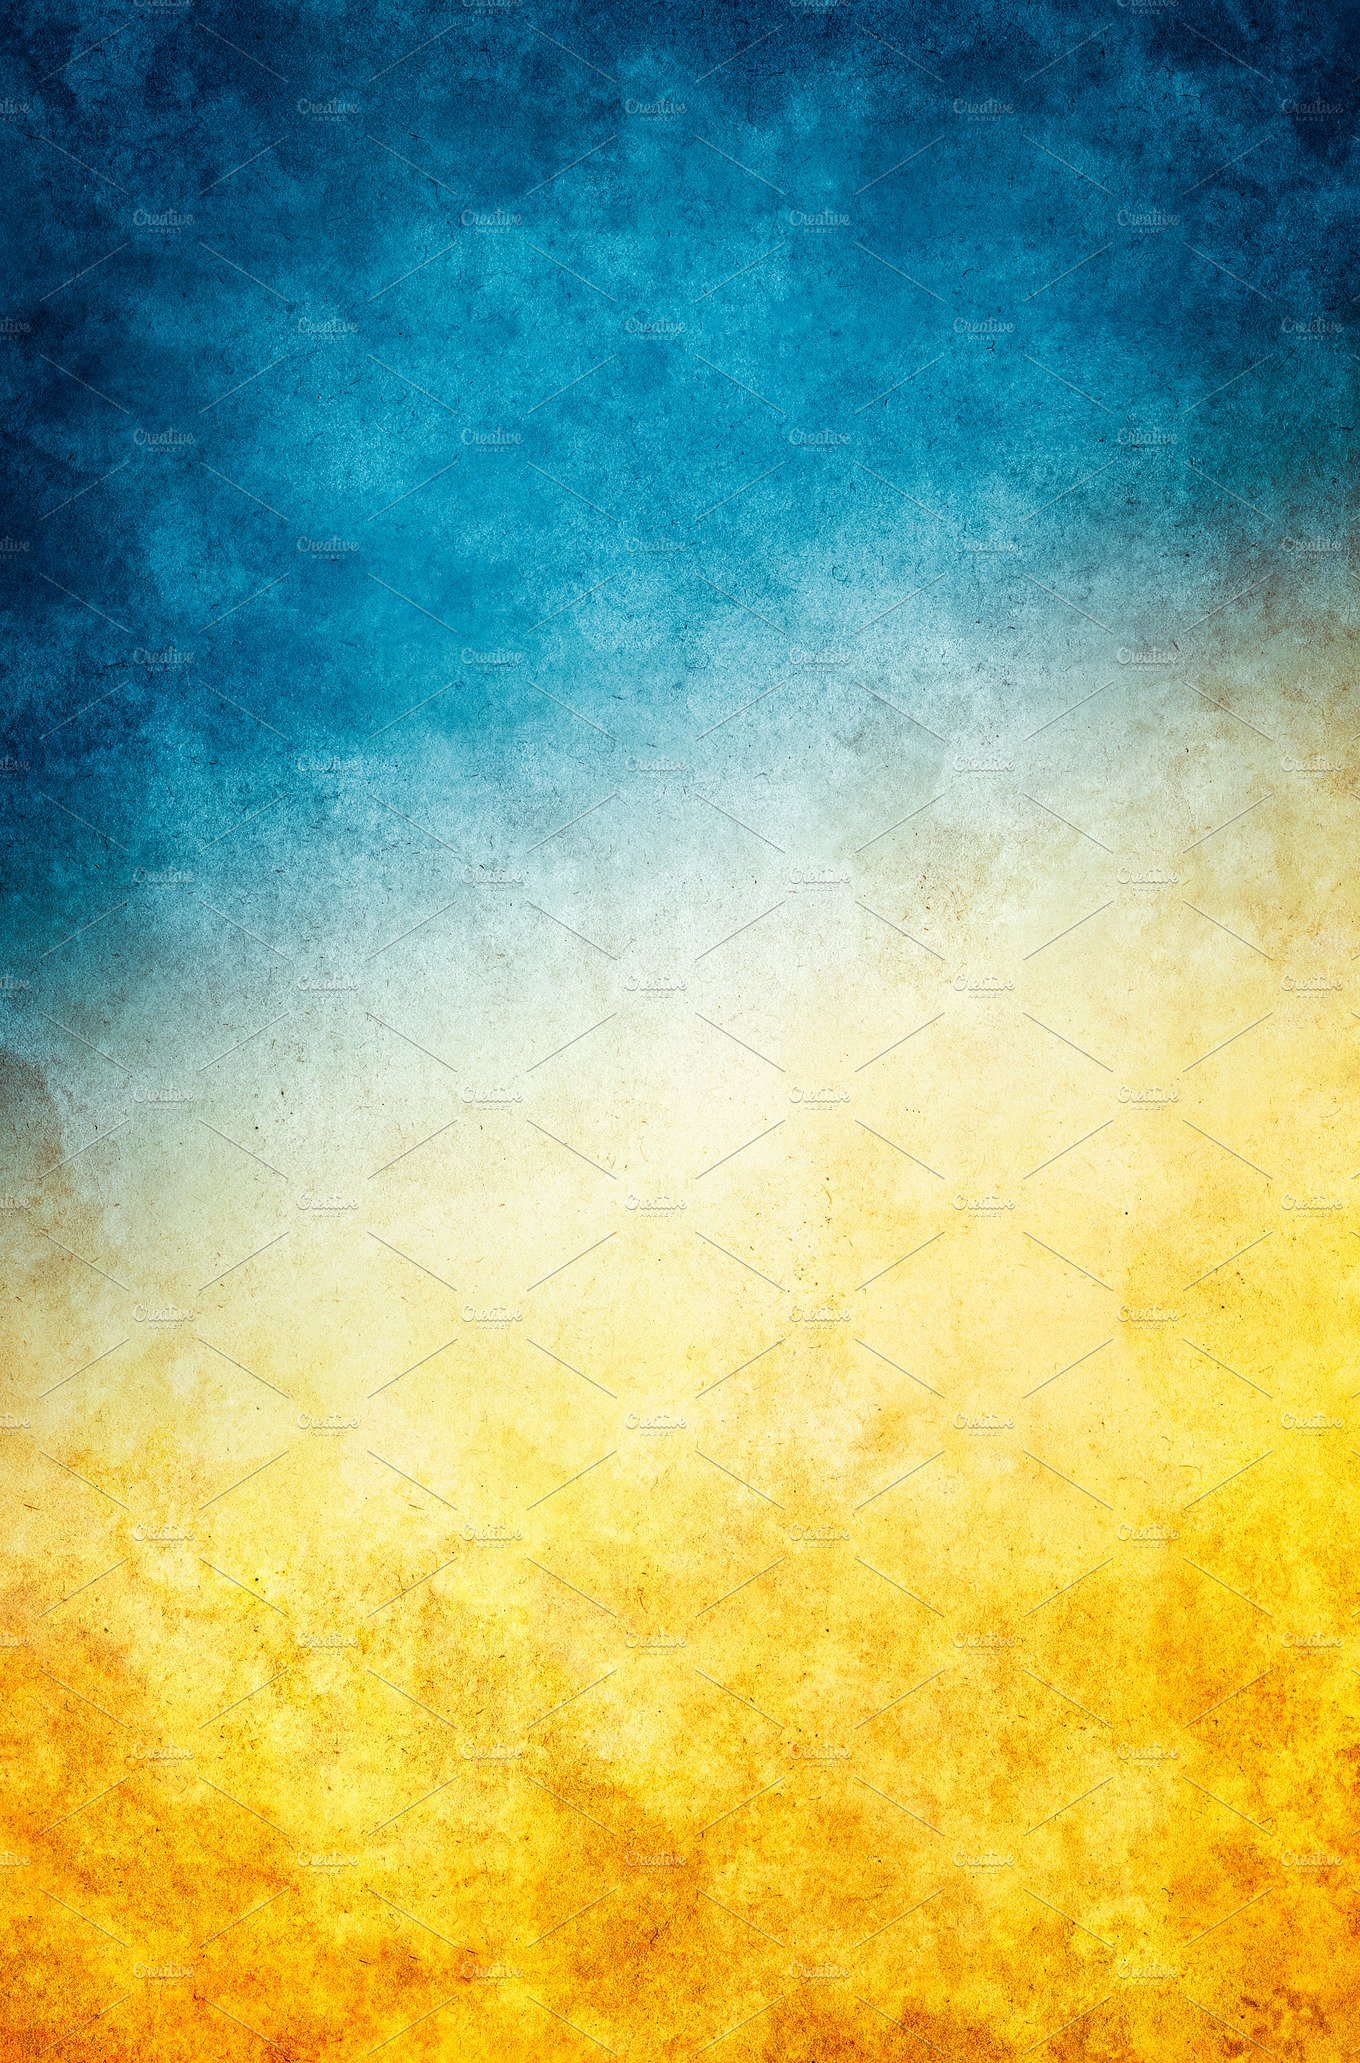 Blue And Yellow Bathroom Decor: Yellow Blue Grunge Background